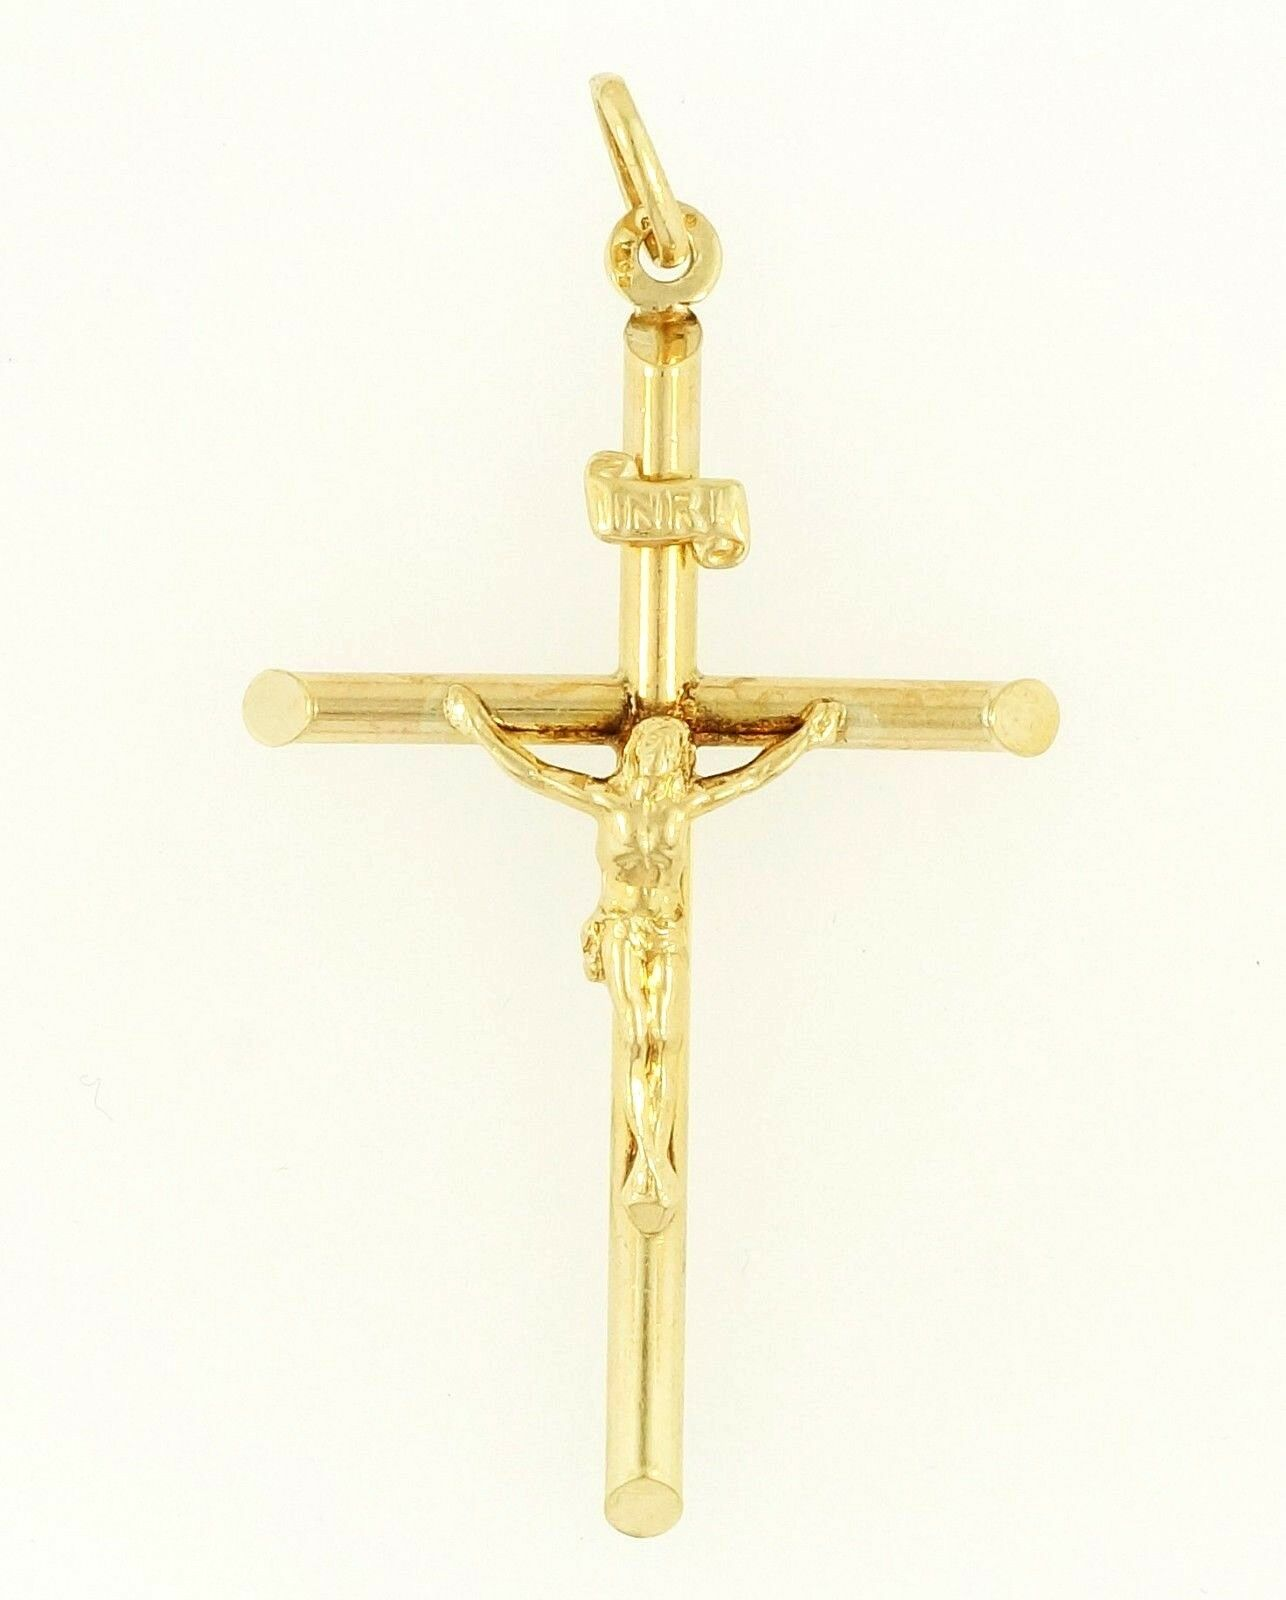 9Carat Yellow gold Hollow 3D Crucifix Cross Pendant (32x48mm)